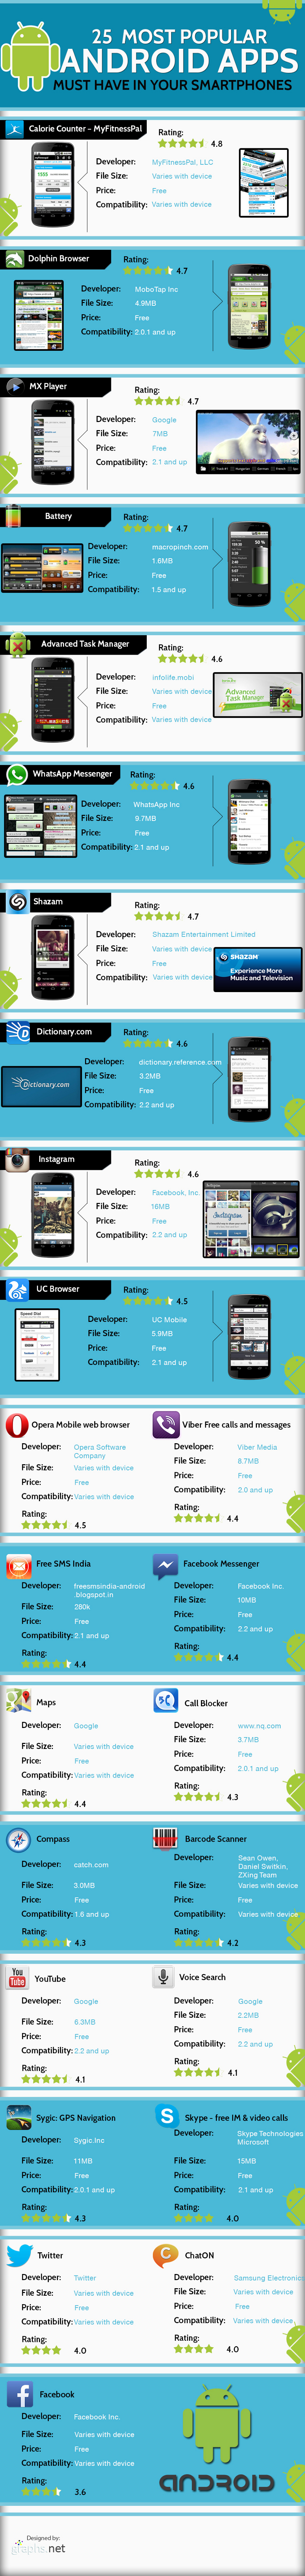 Popular-Free-Android-Apps